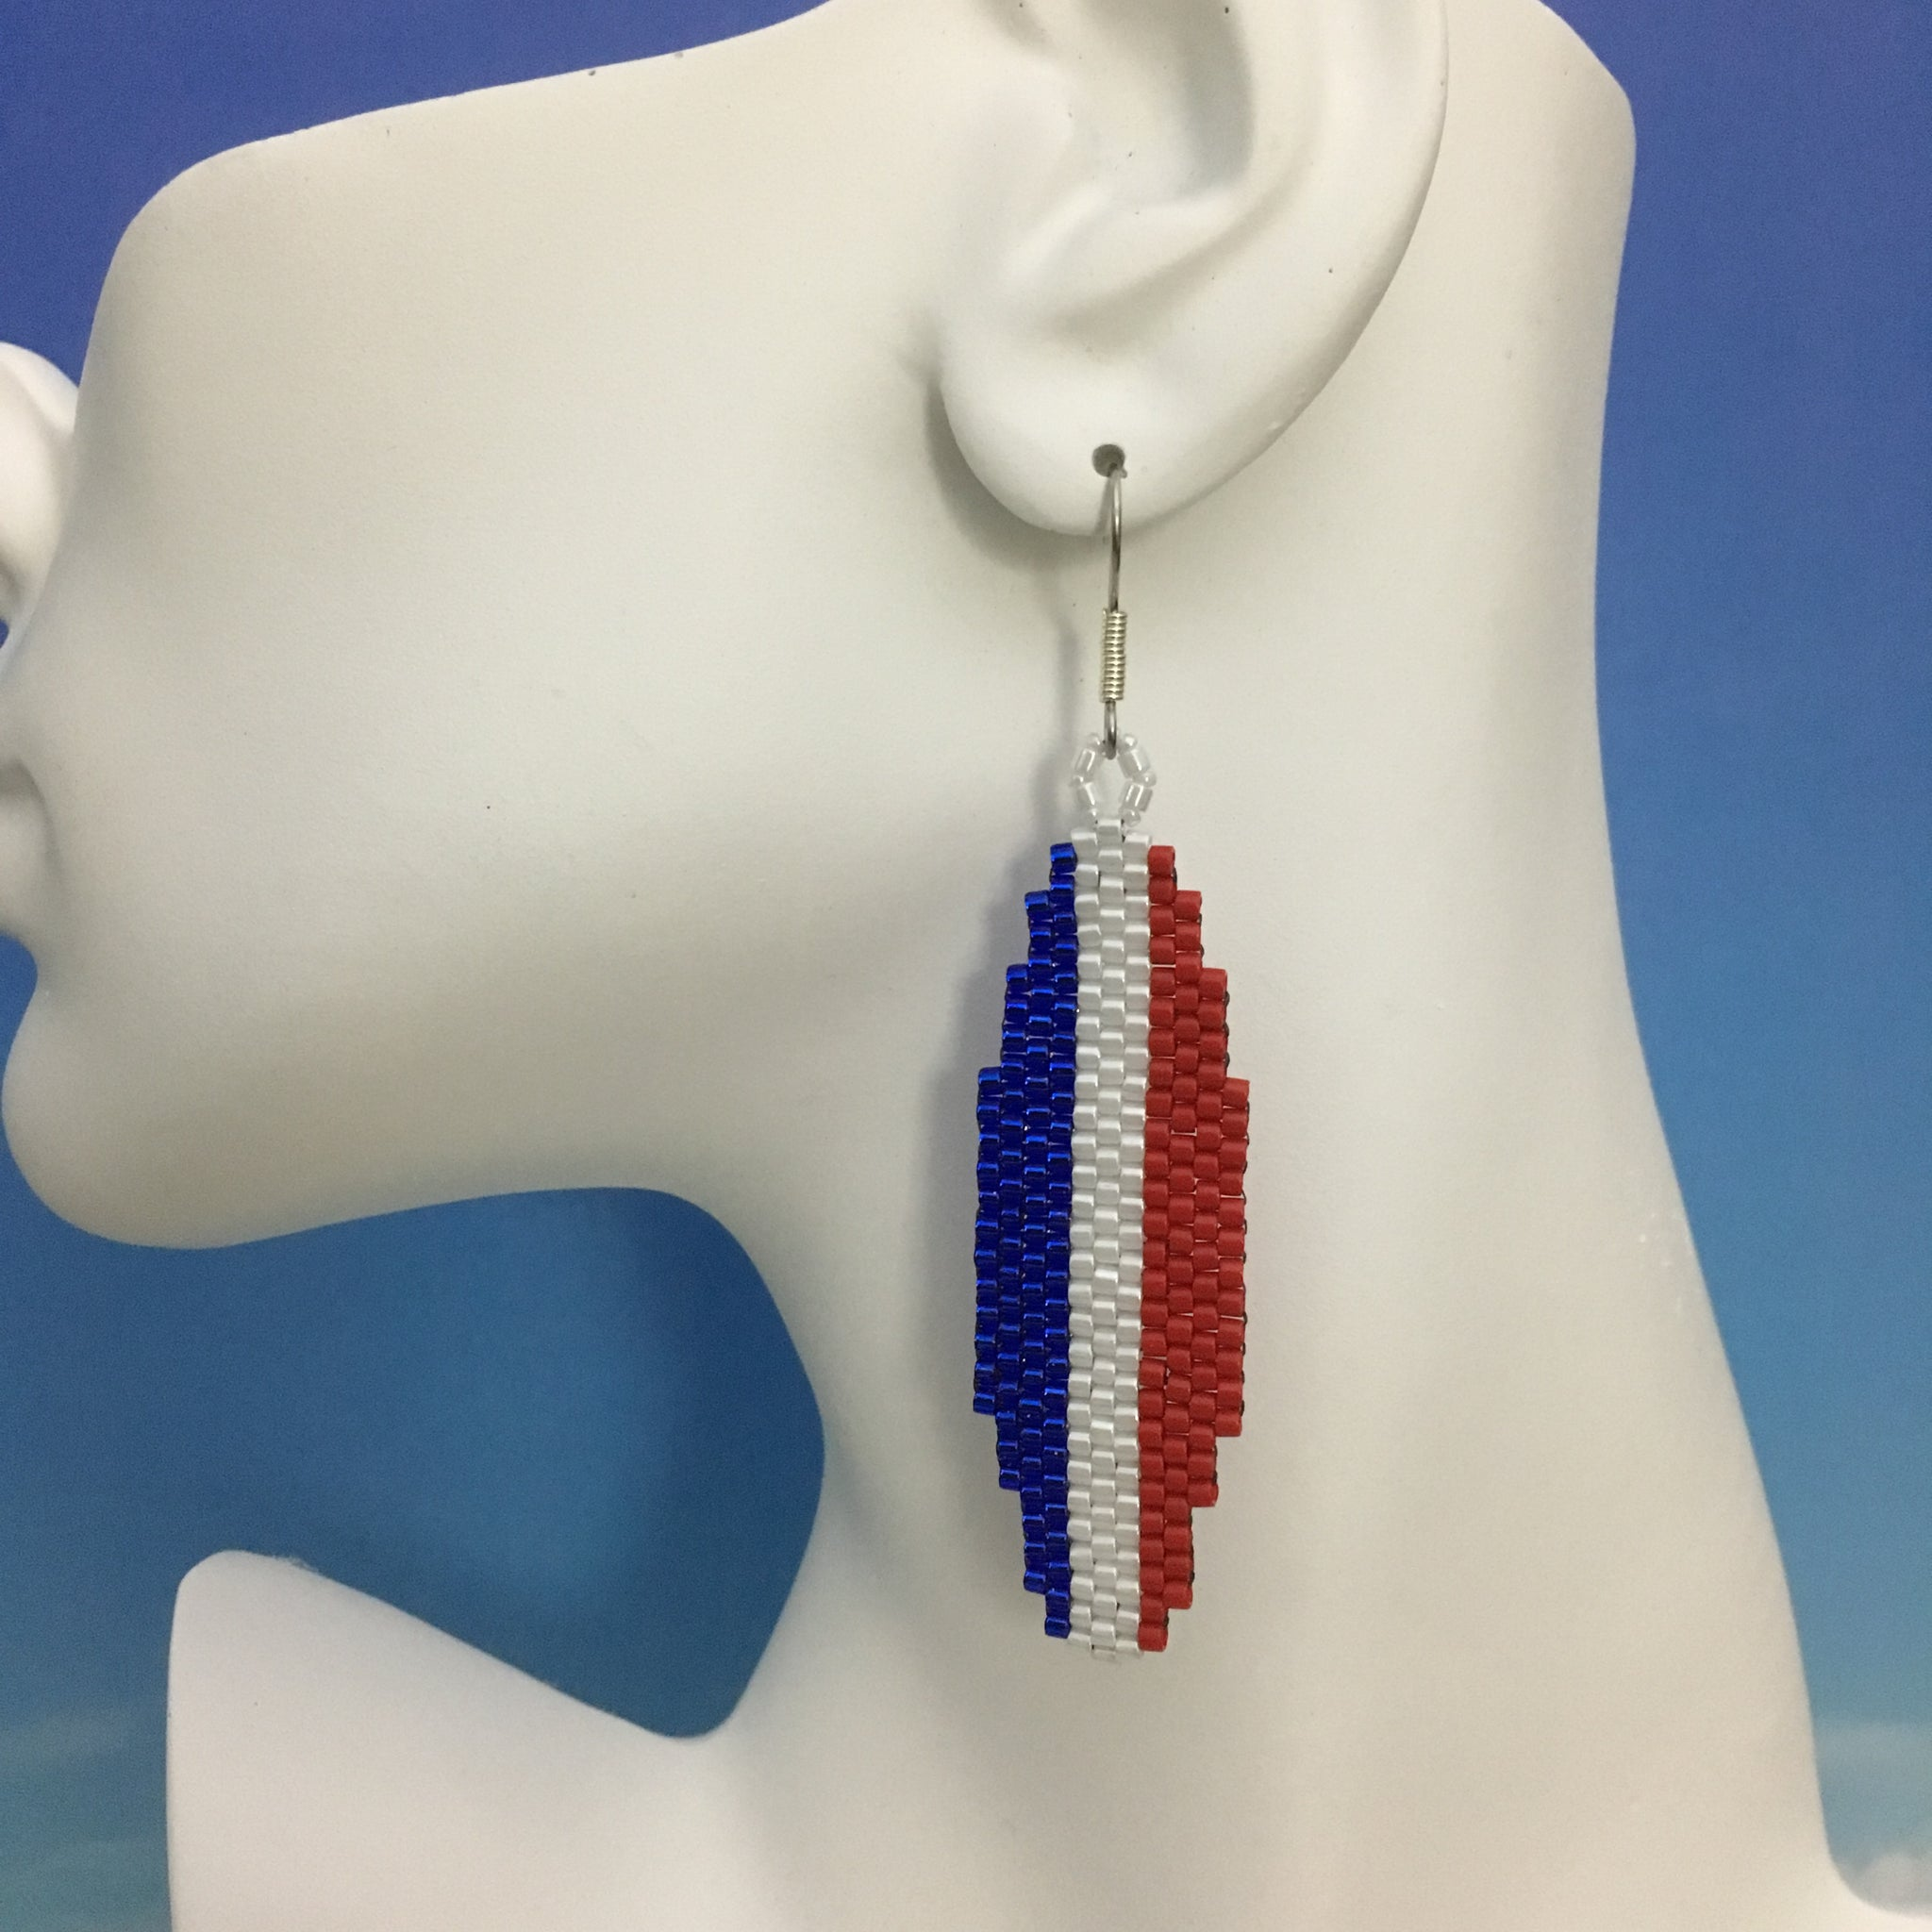 Surfboard beaded earrings handmade red white blue USA Surfing team custom colors beachy fun style